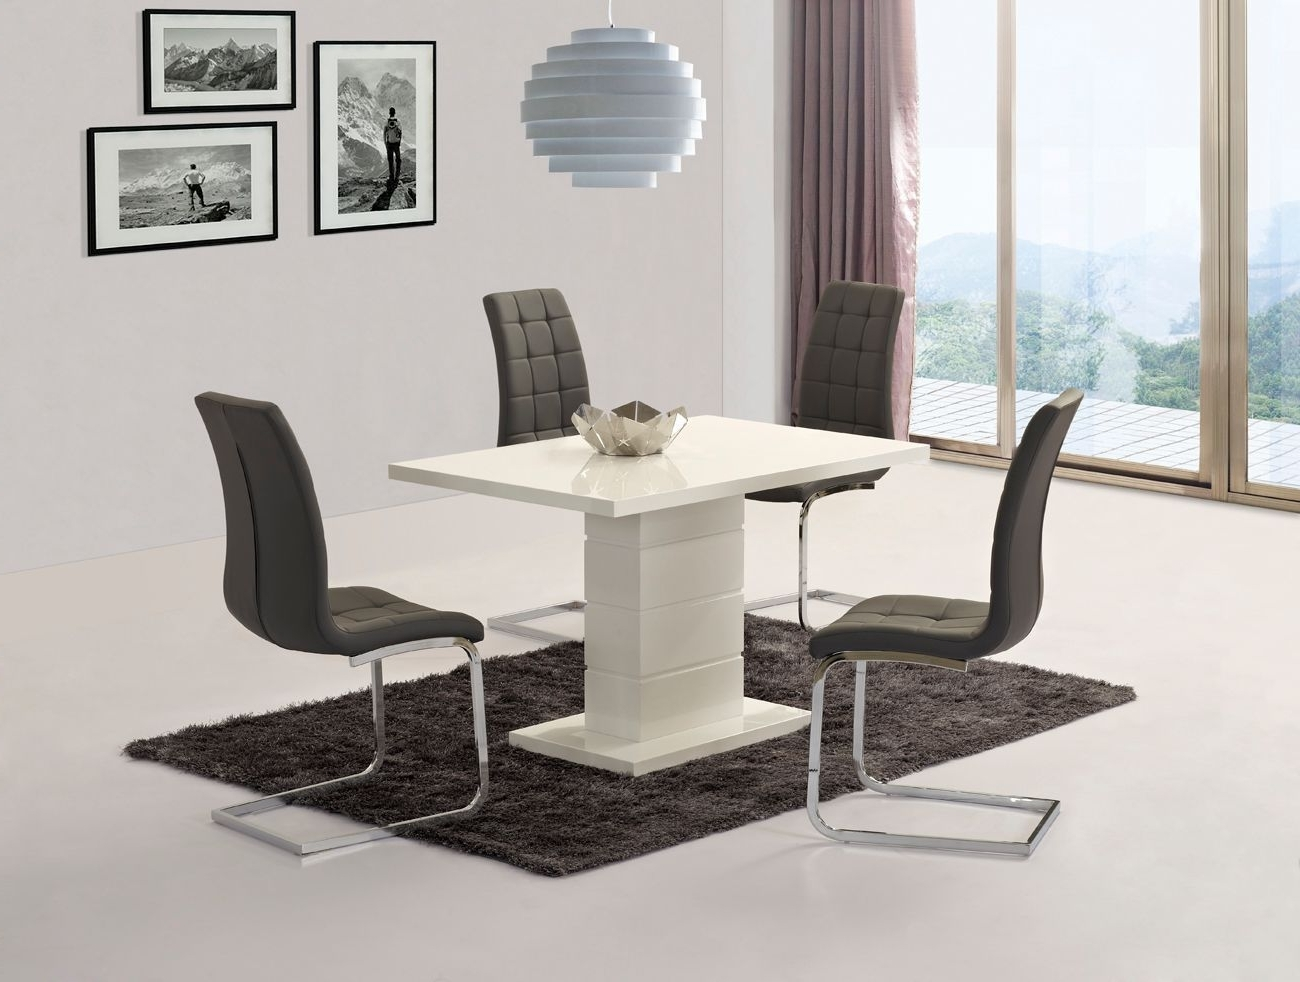 White High Gloss Dining Set With 6 Grey Chairs – Homegenies Pertaining To Popular White High Gloss Dining Chairs (View 24 of 25)